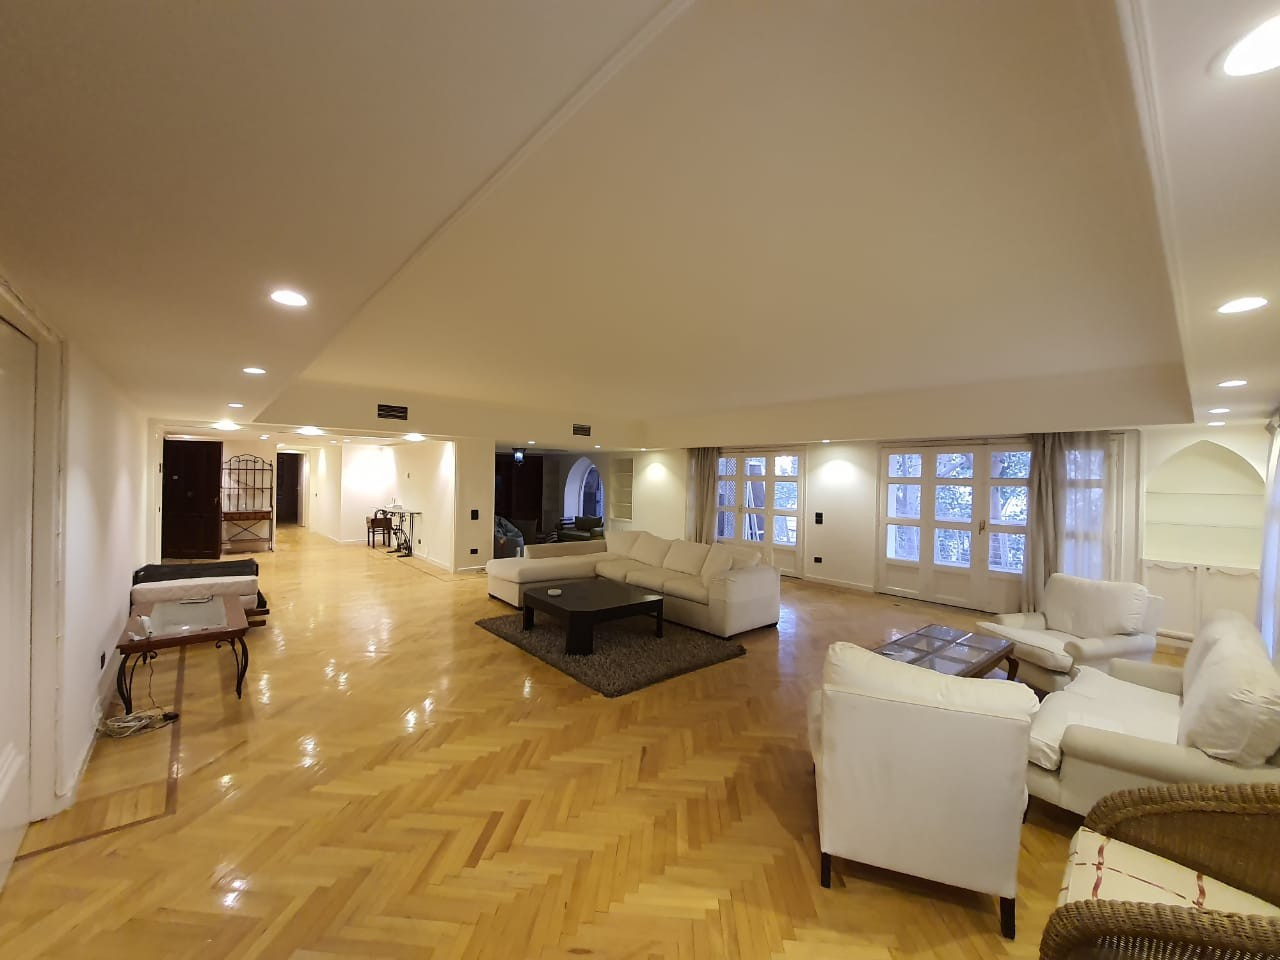 Luxurious Modern Apartment For Rent In Al Maadi Sarayat Cairo Egypt - 4760 Featured Image